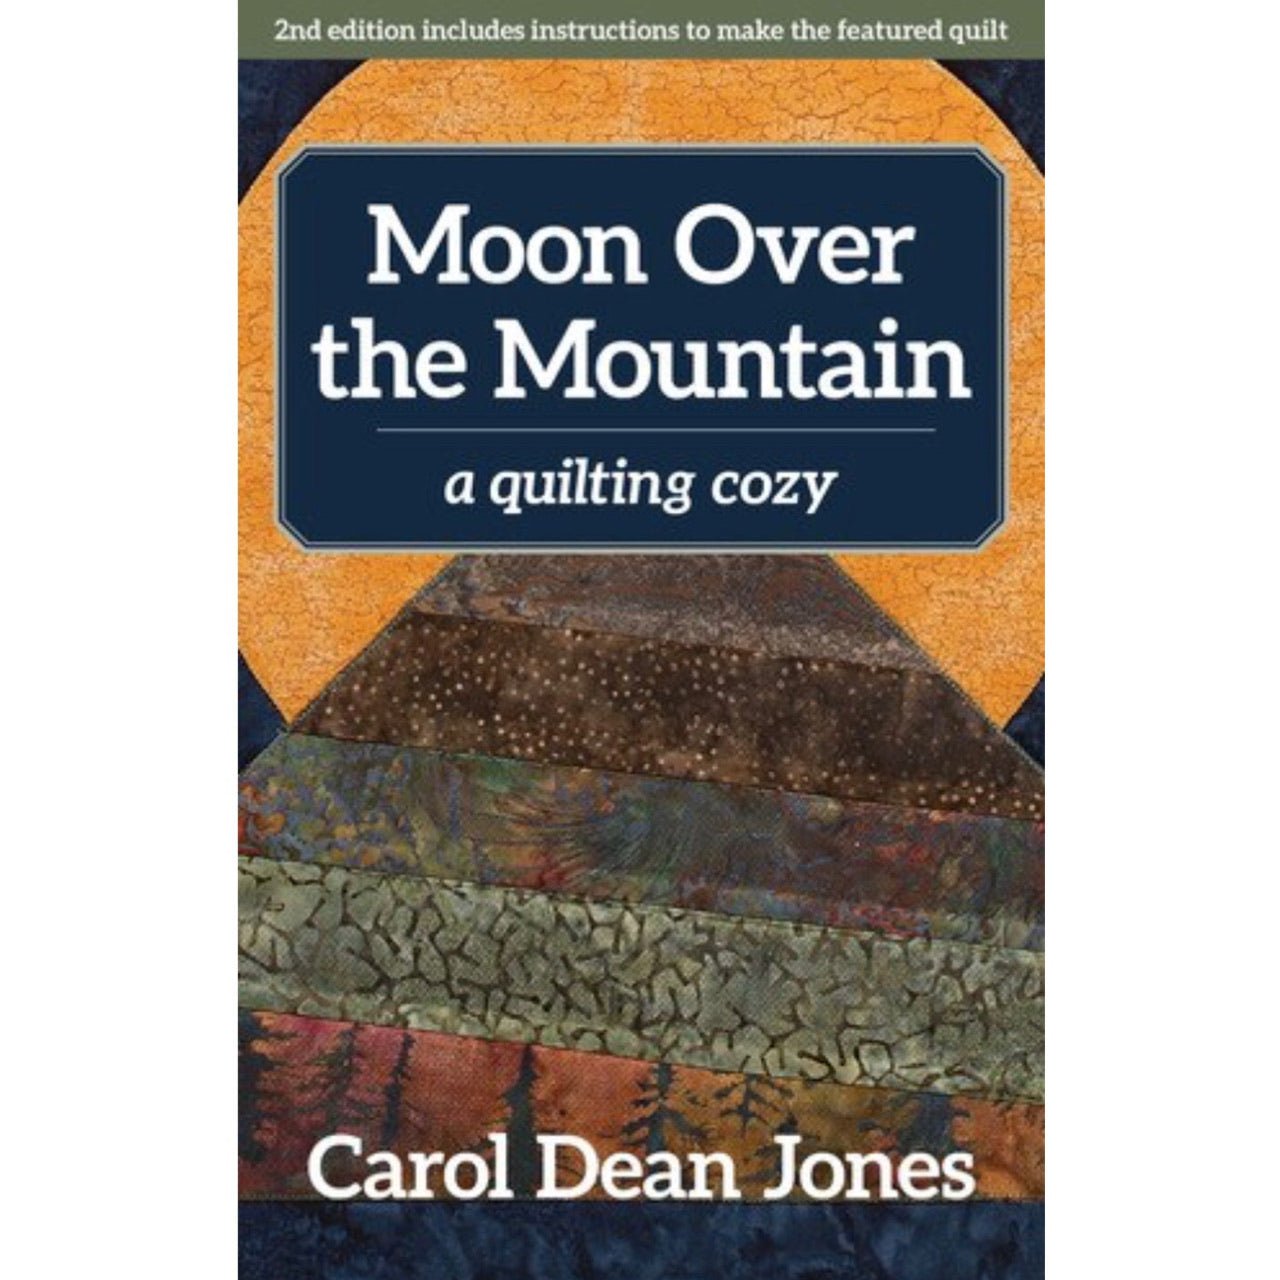 Moon Over the Mountain - Book 6 - Carol Dean Jones